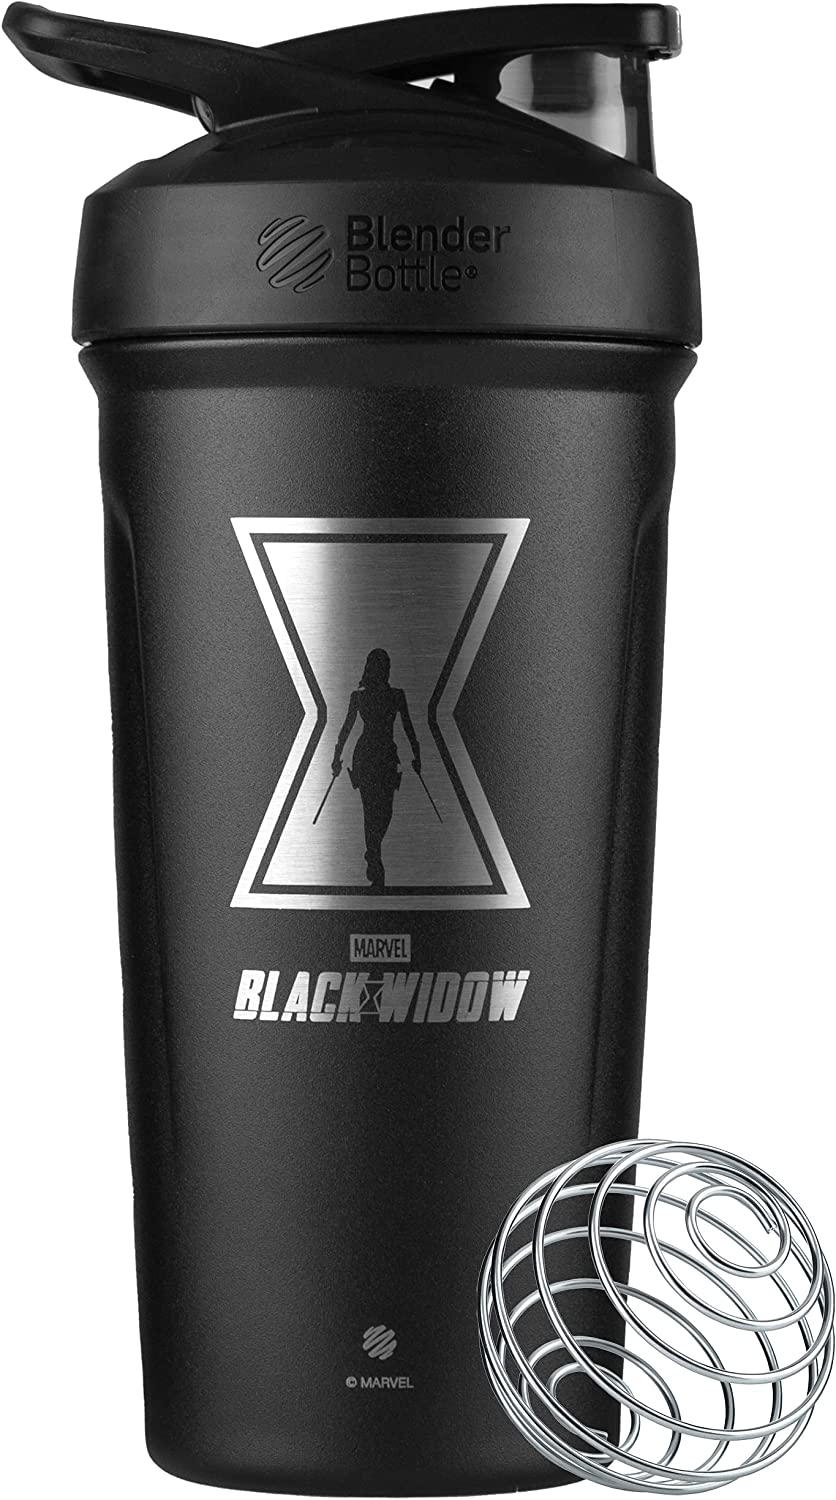 BlenderBottle Strada Shaker Cup Insulated Stainless Steel Water Bottle with Wire Whisk, 24-Ounce, Black Widow